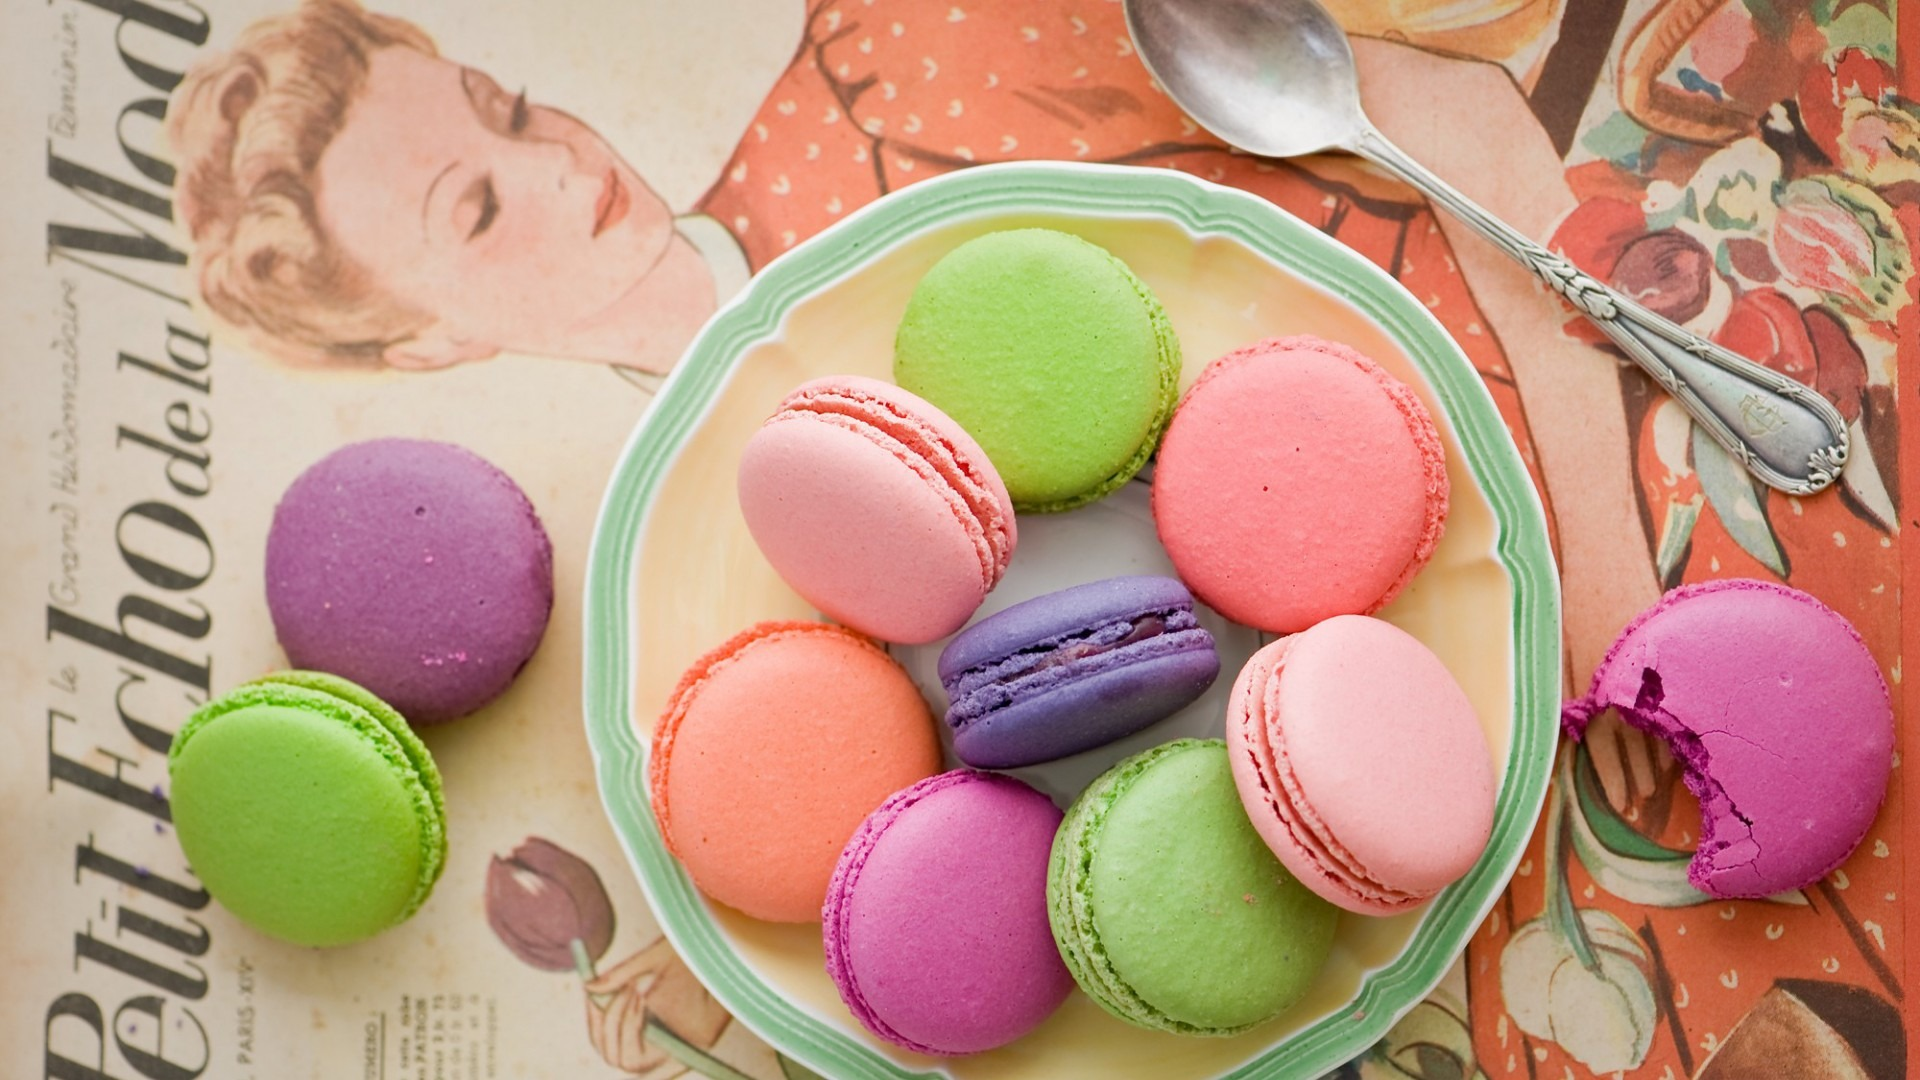 Macarons Wallpapers - Wallpaper, High Definition, High Quality ...